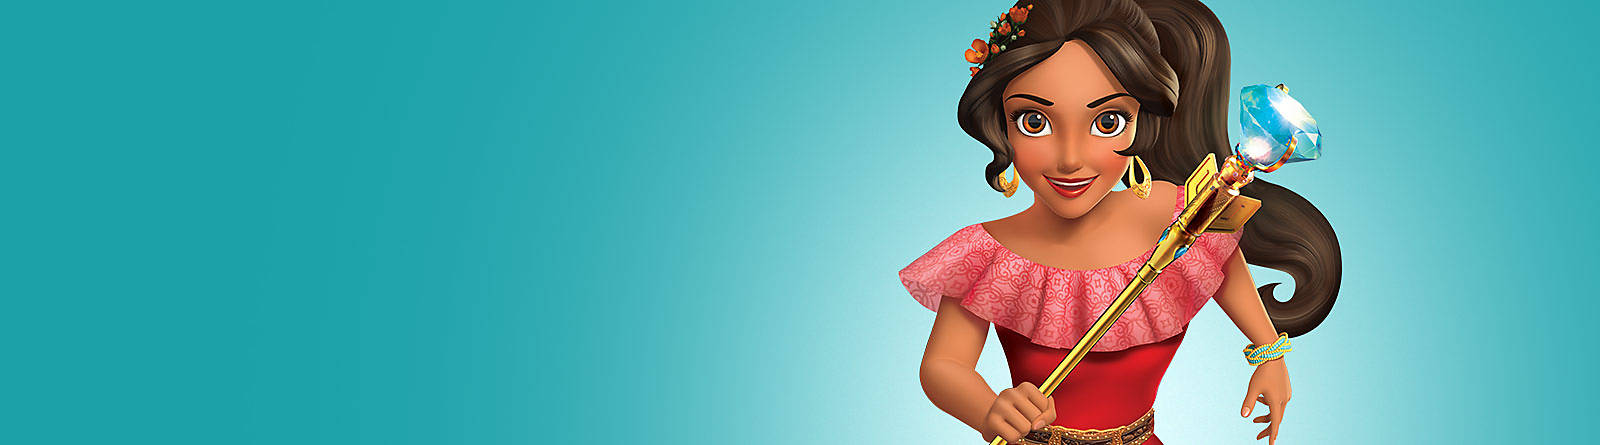 Elena Discover our wonderful range of Elena of Avalor soft toys, costumes, clothing and more